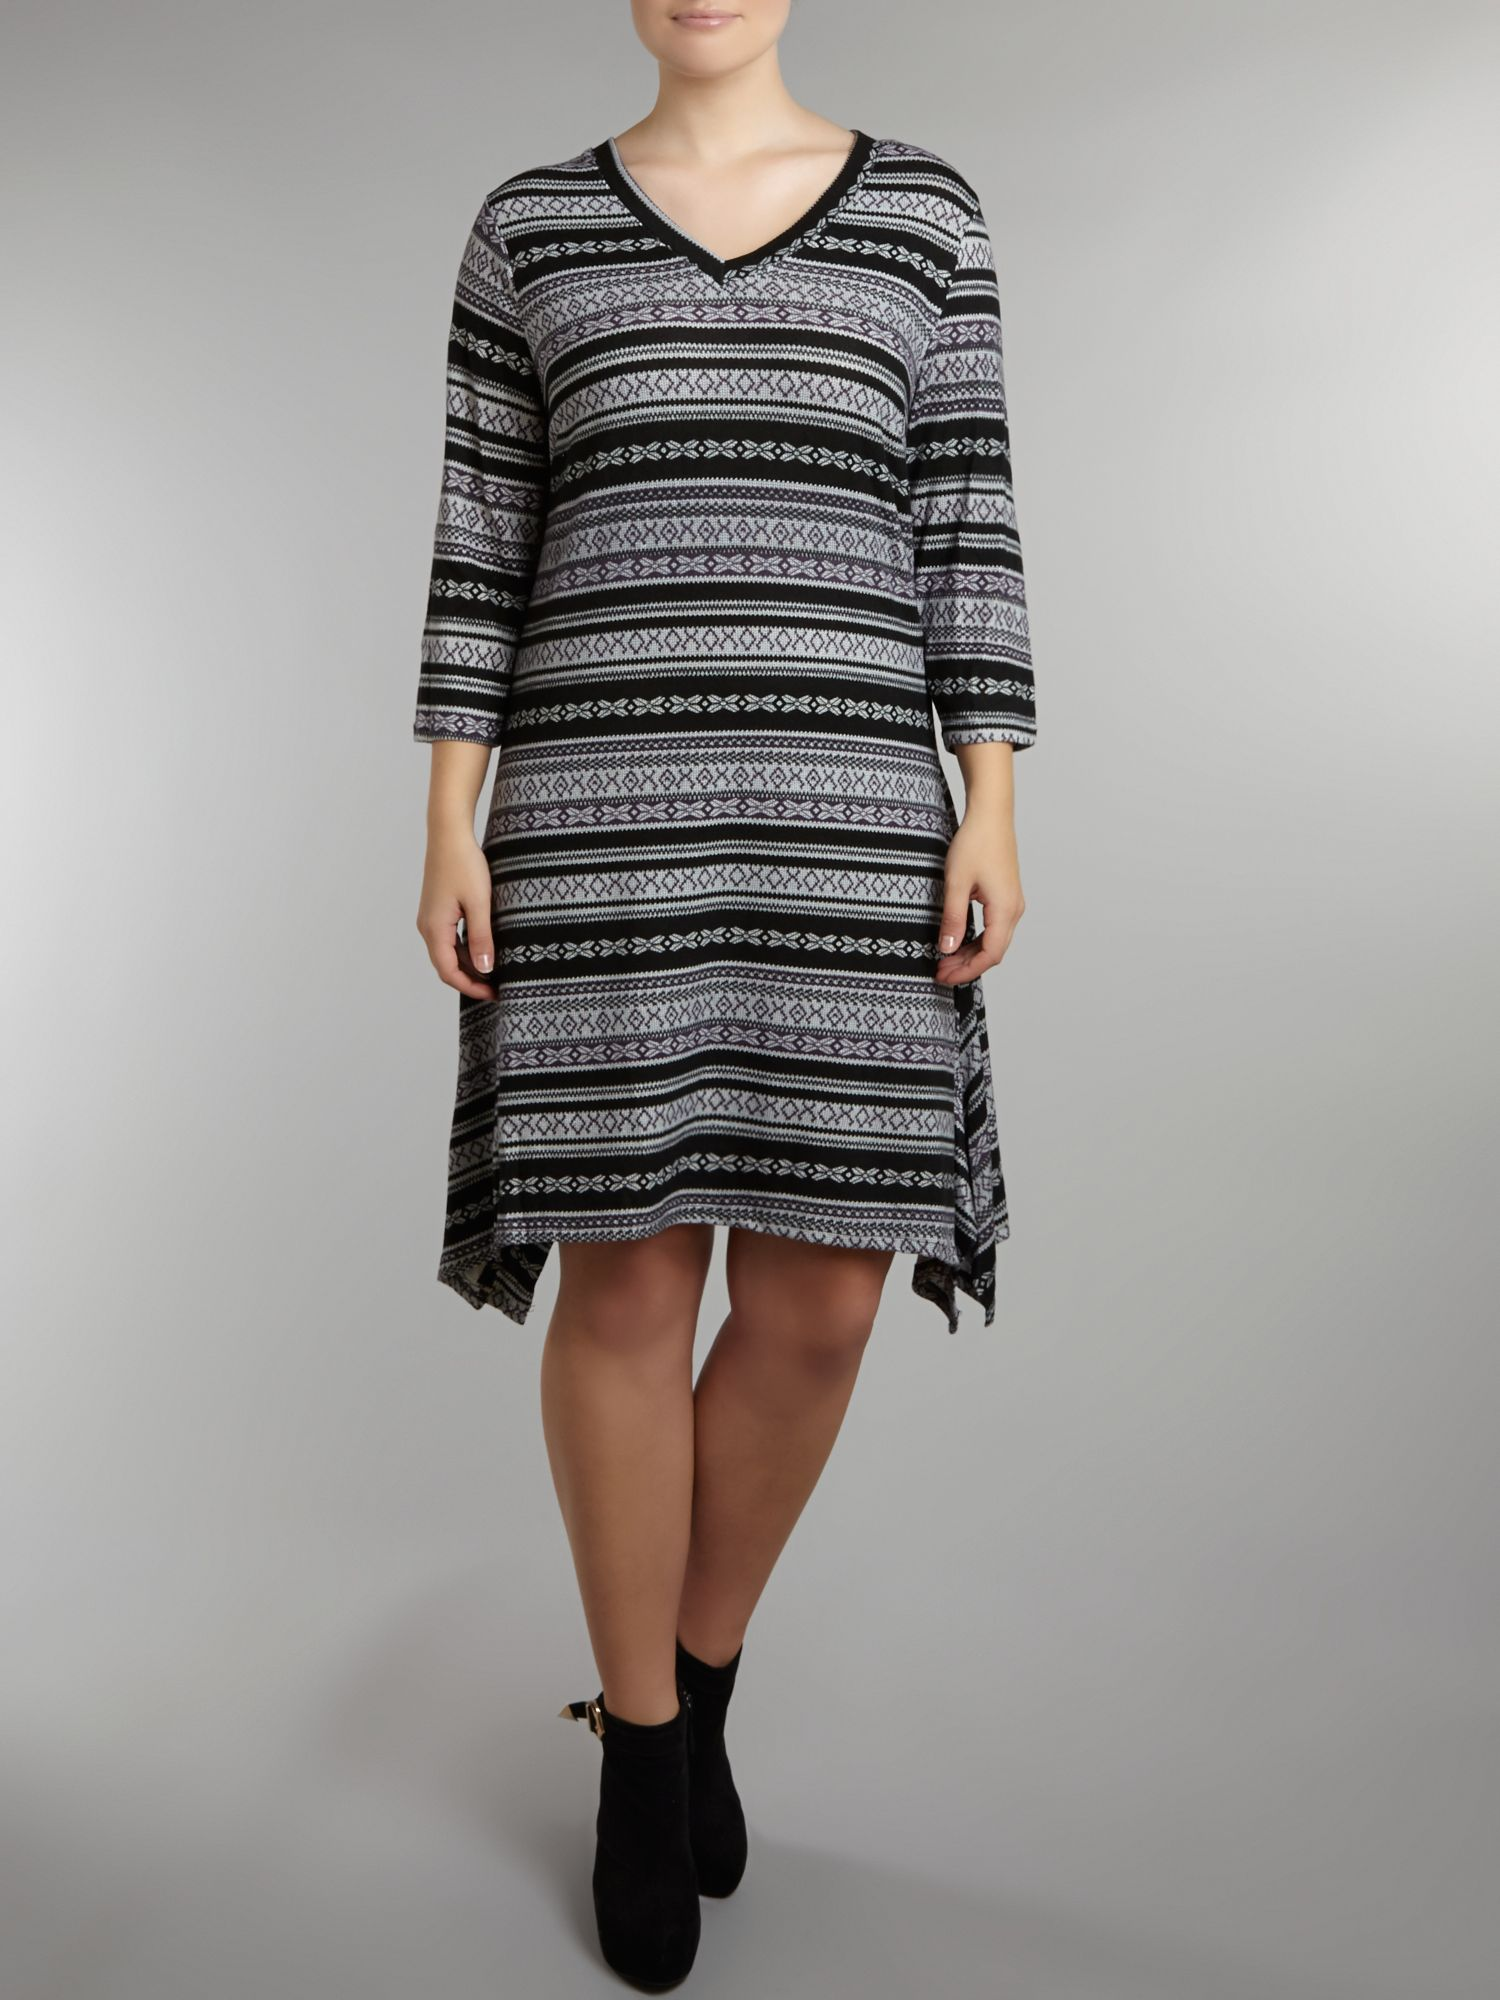 Aztec print 3/4 Sleeve Dress